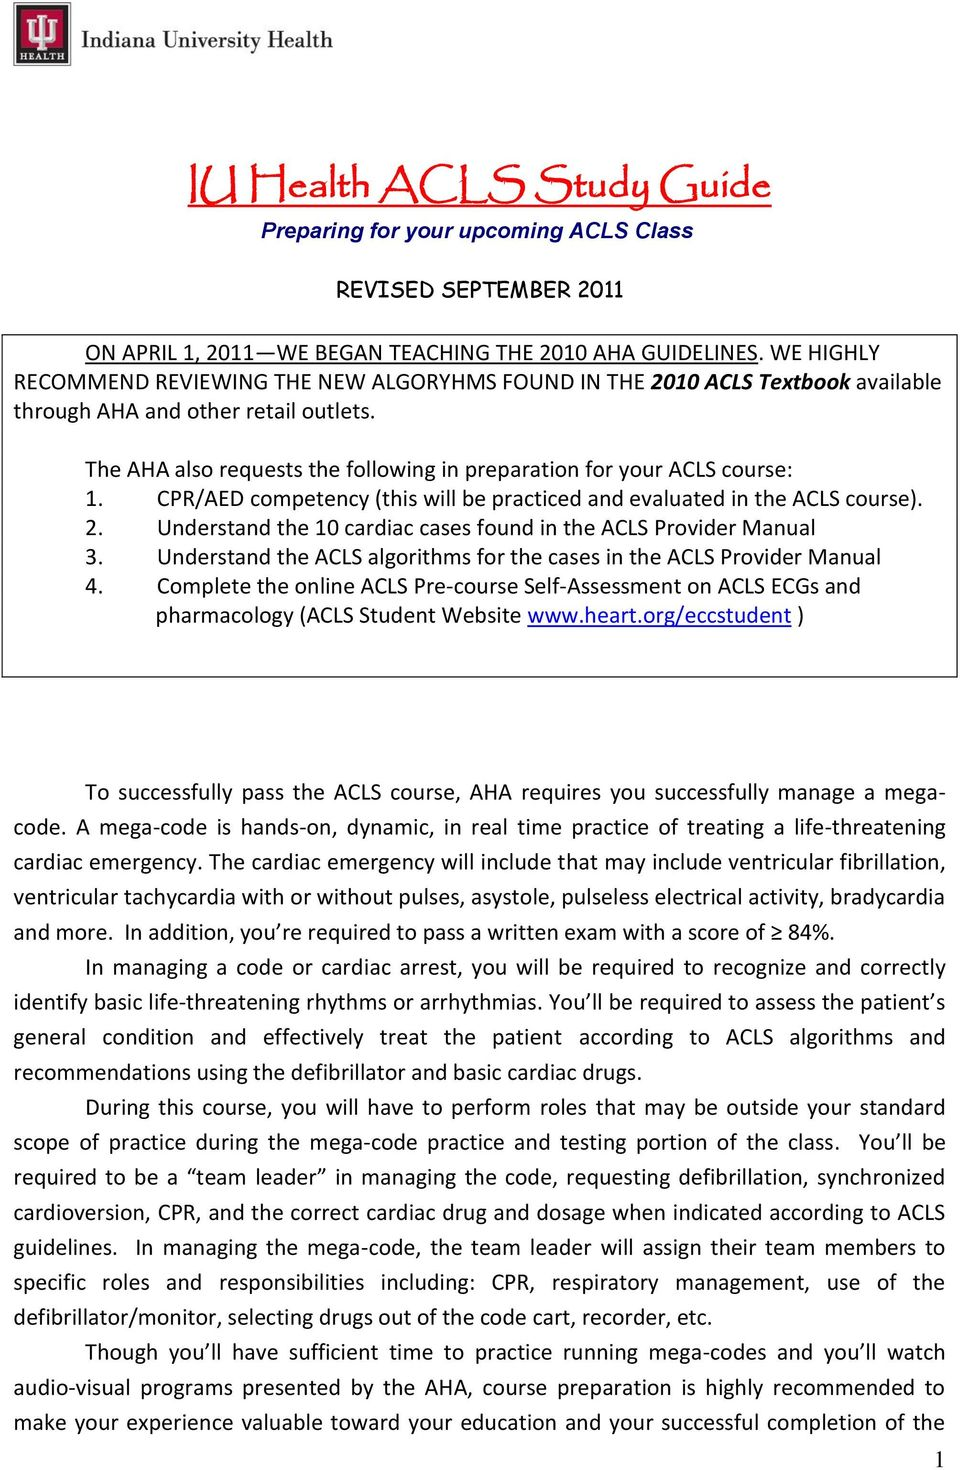 The AHA also requests the following in preparation for your ACLS course: 1. CPR/AED competency (this will be practiced and evaluated in the ACLS course). 2.